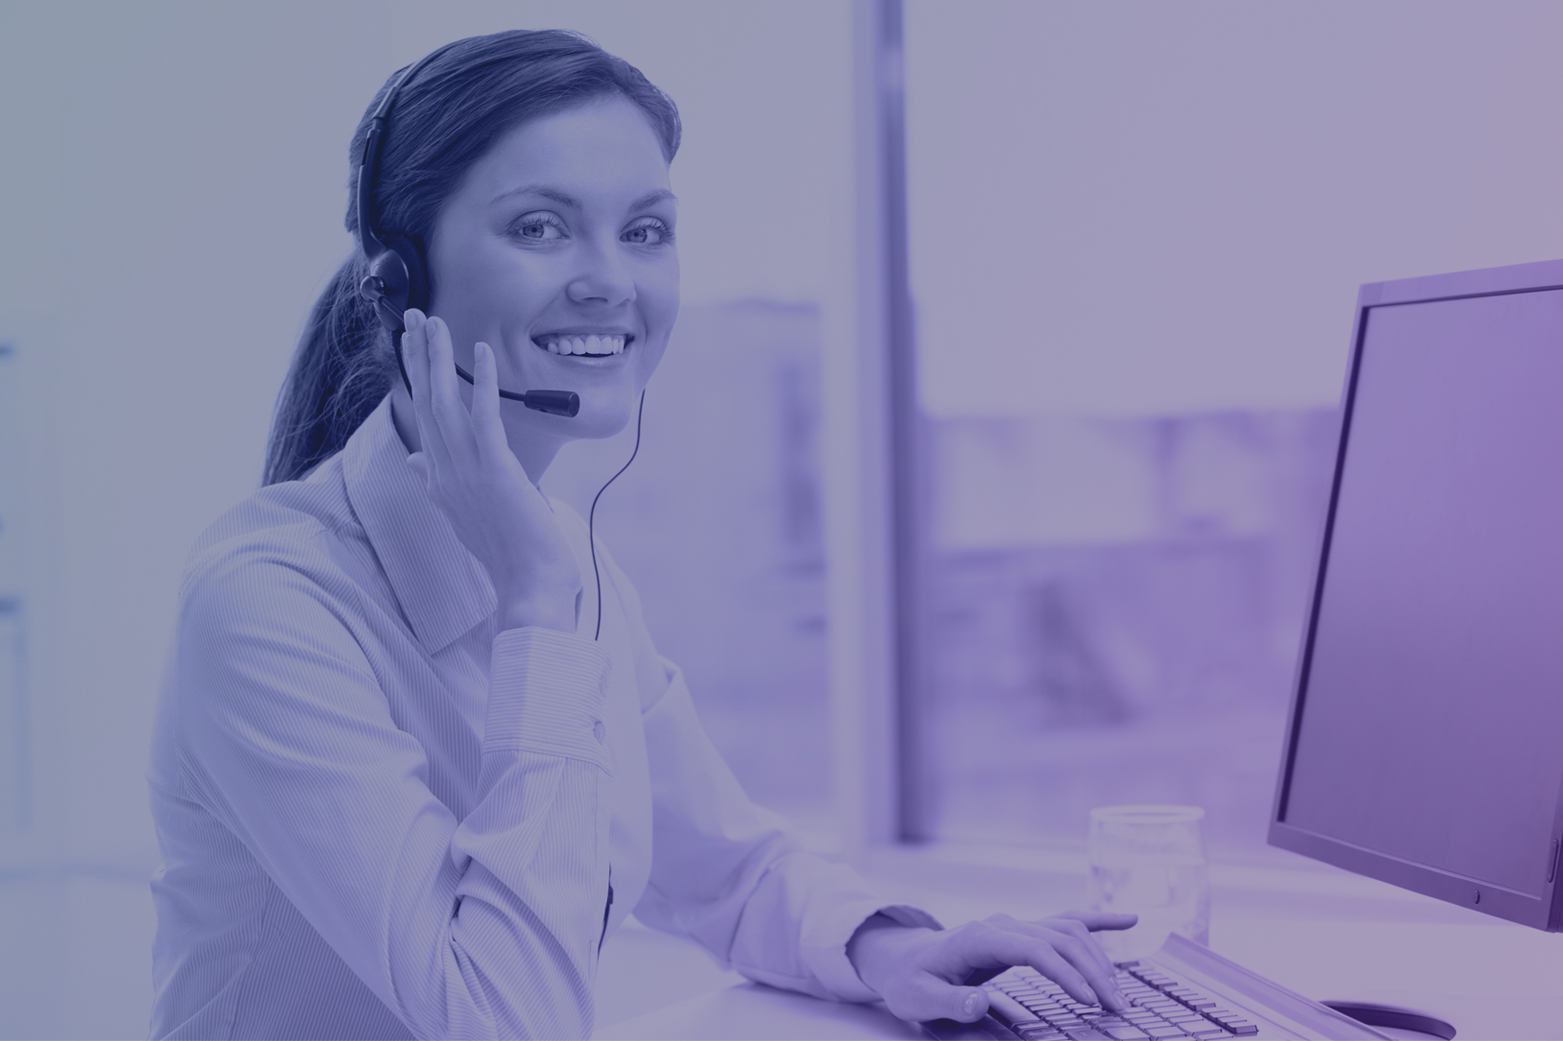 Helpdesk- What helpdesk tools do business typically use?